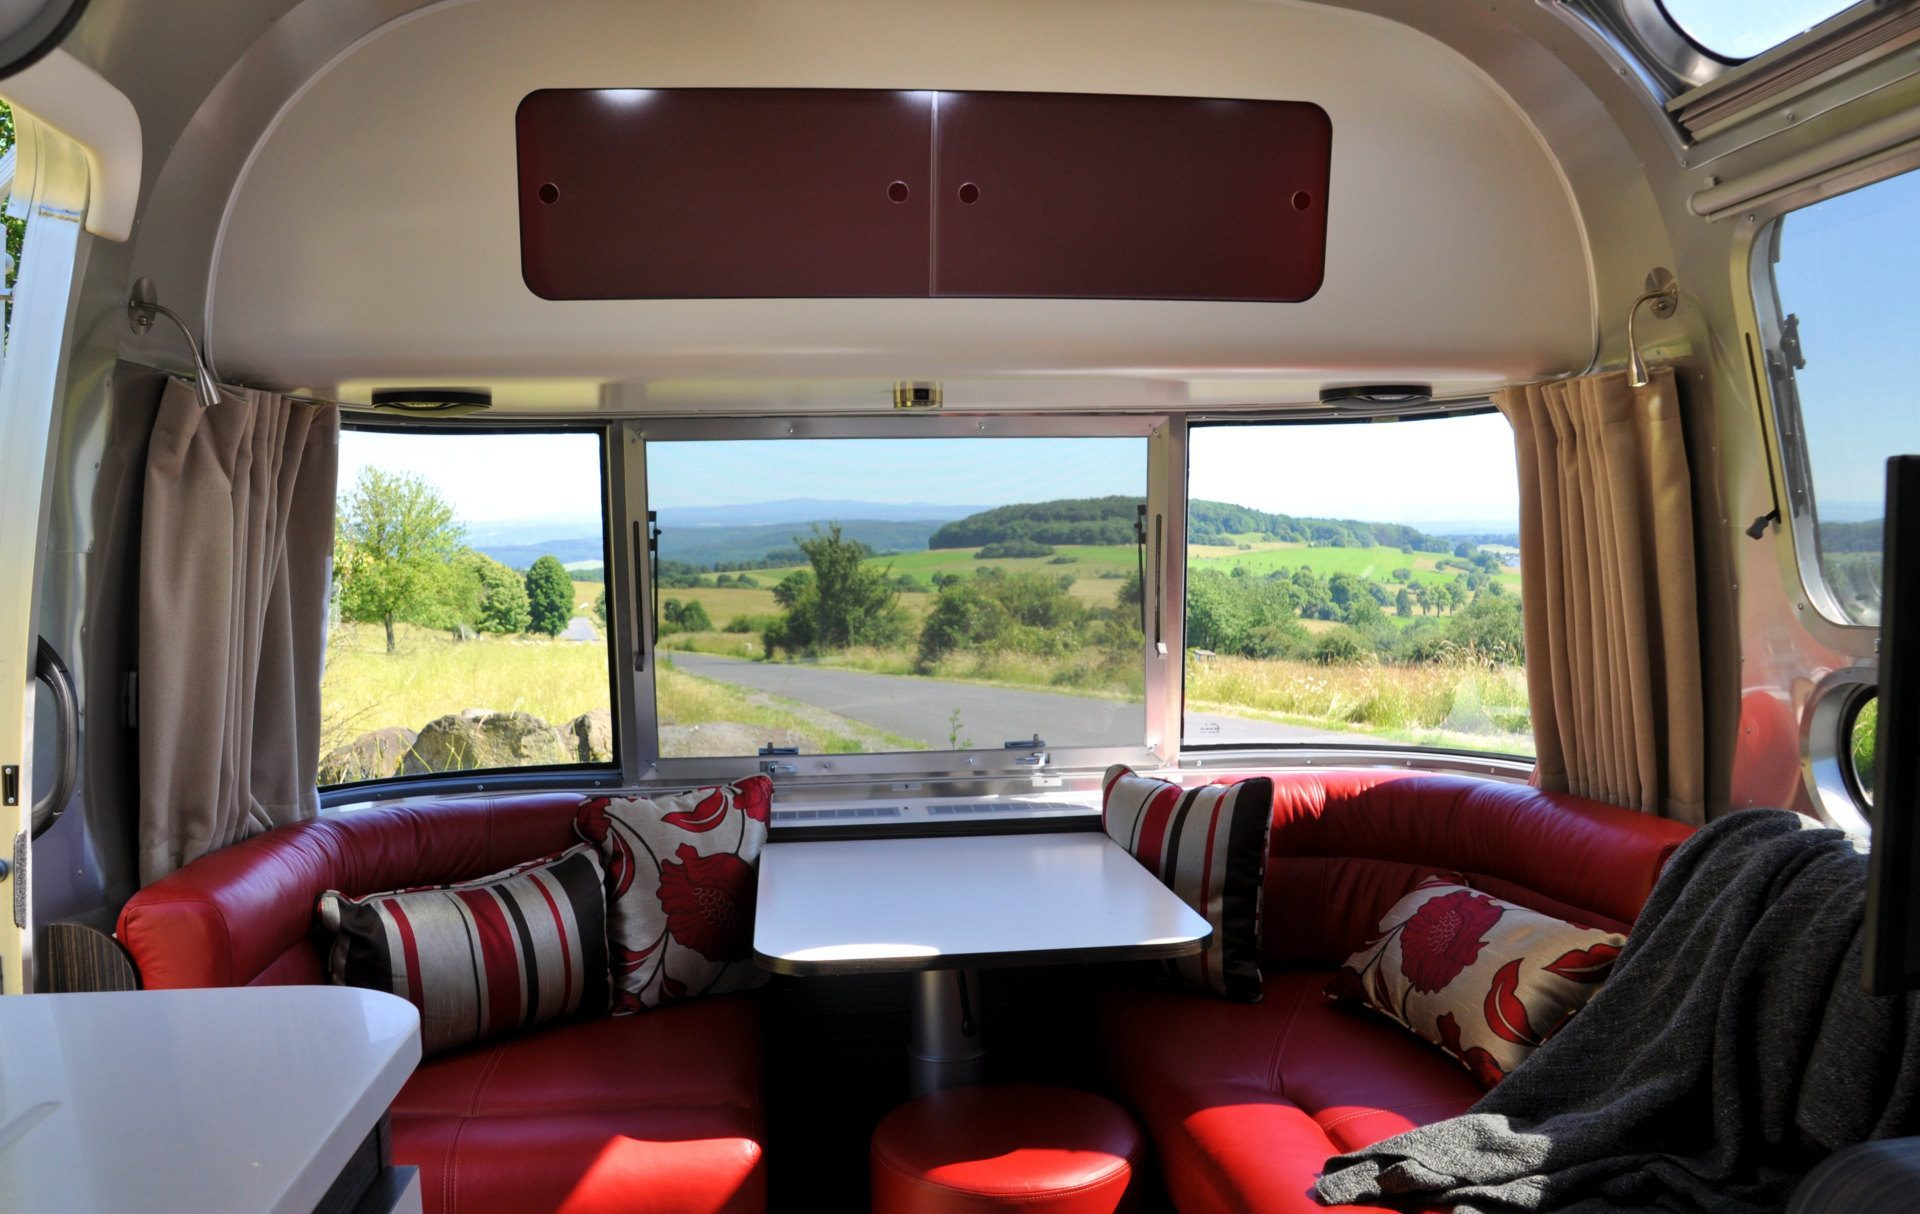 Top Eco Campers - Inside the airstream